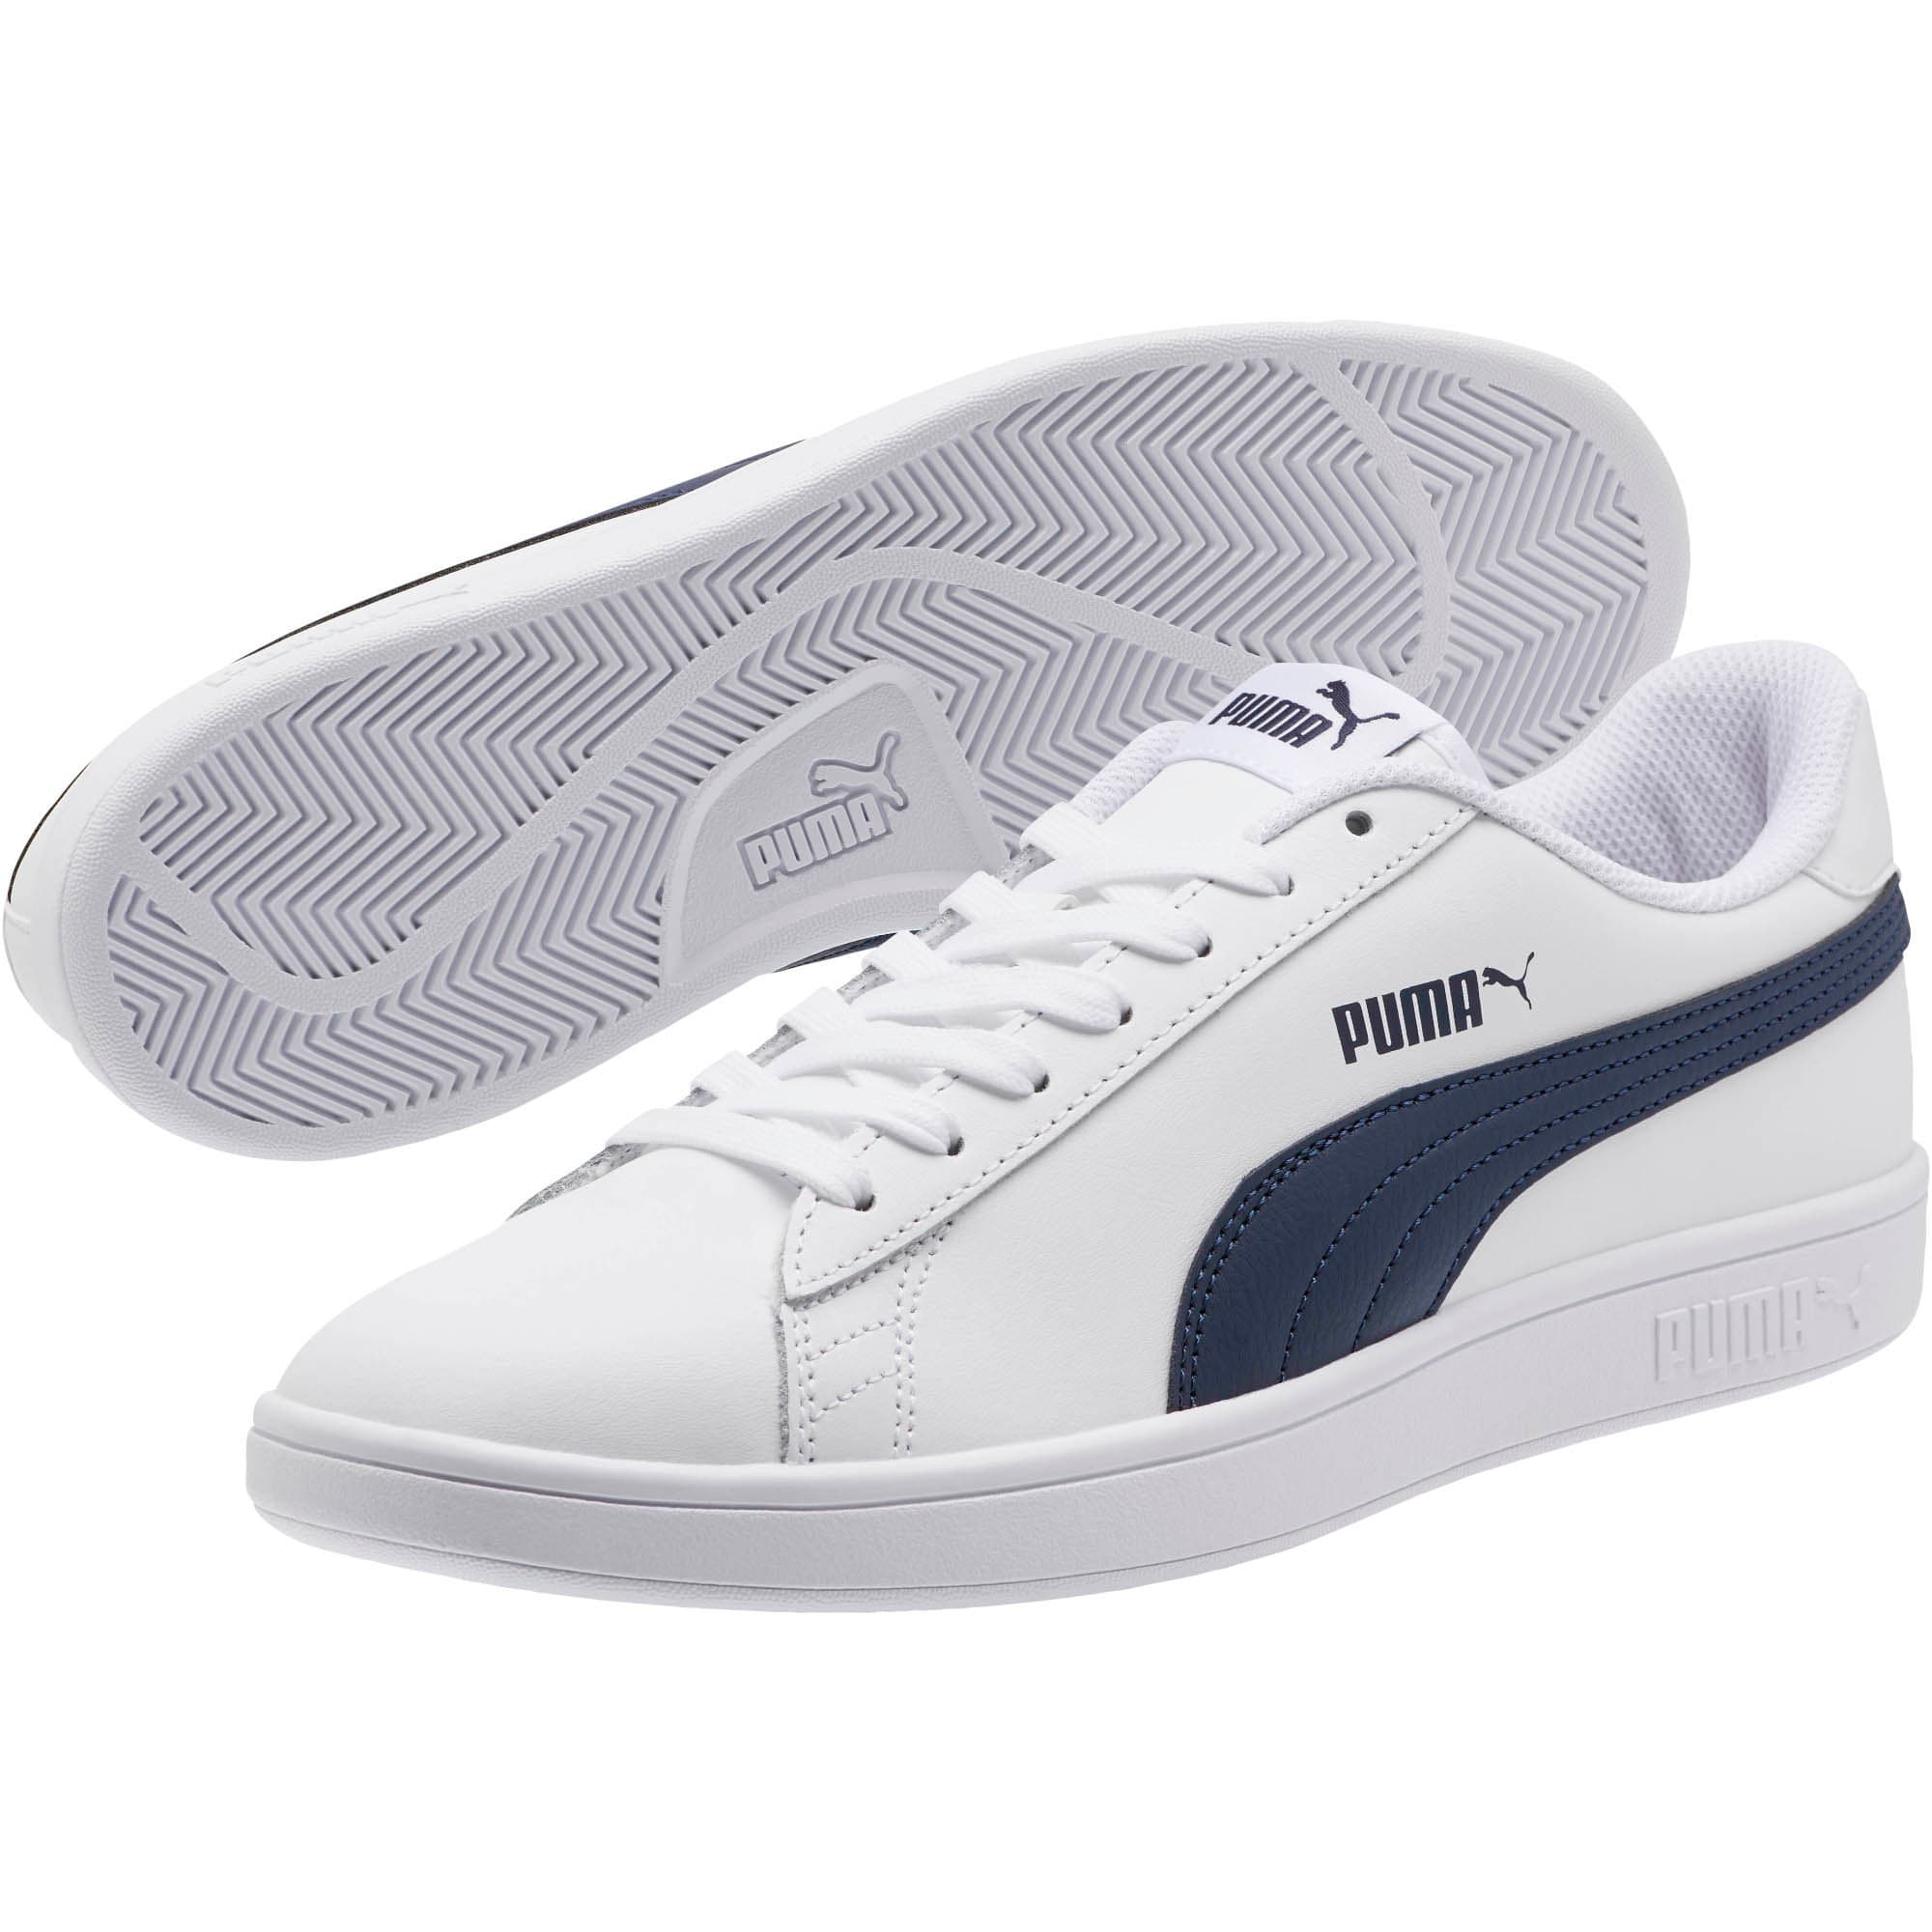 PUMA Smash v2 Sneakers, Puma White-Peacoat, large